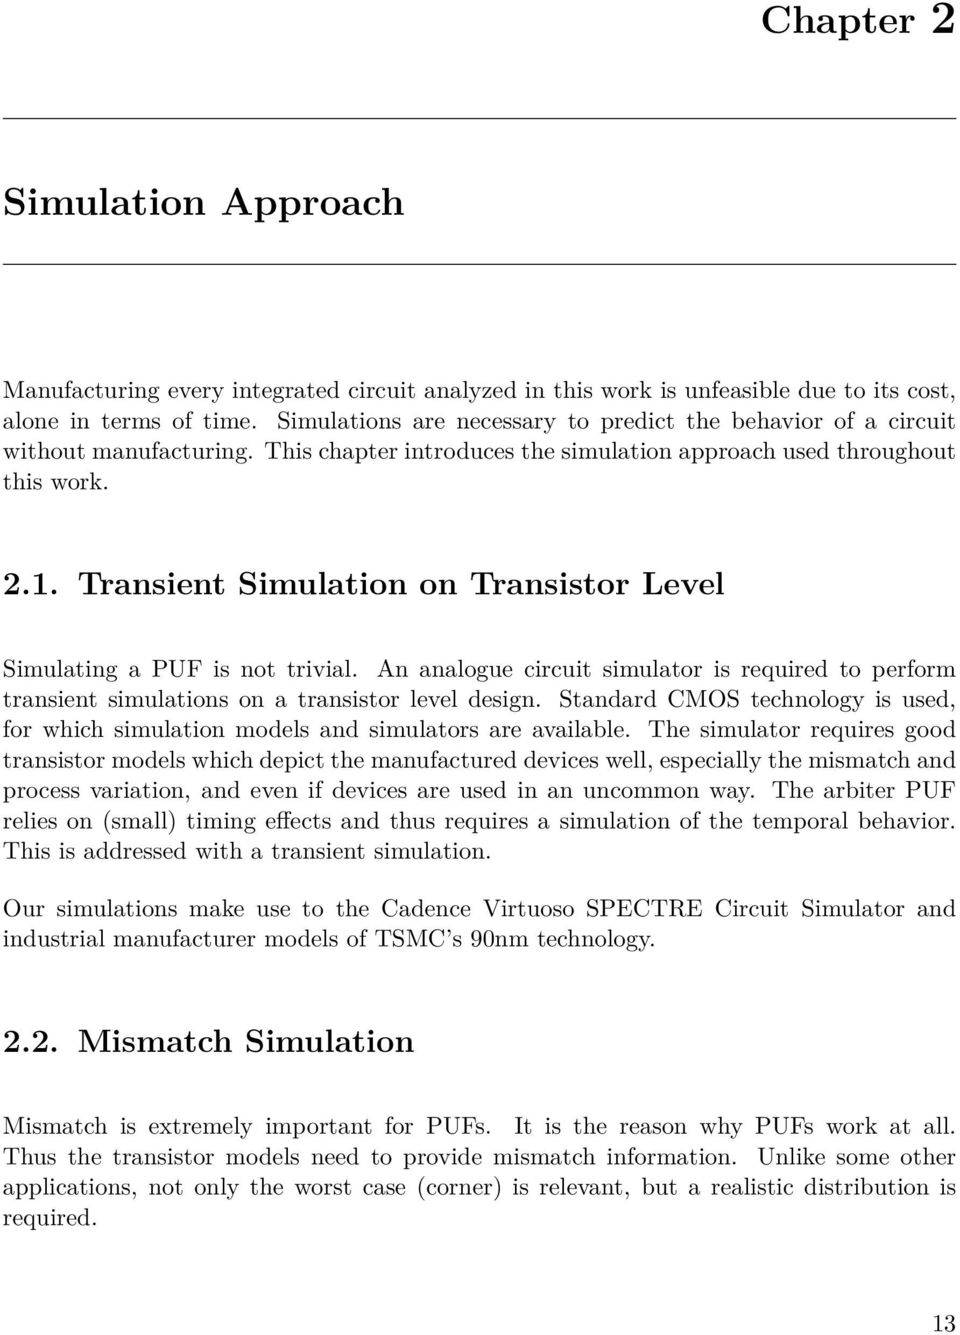 Transient Simulation on Transistor Level Simulating a PUF is not trivial. An analogue circuit simulator is required to perform transient simulations on a transistor level design.